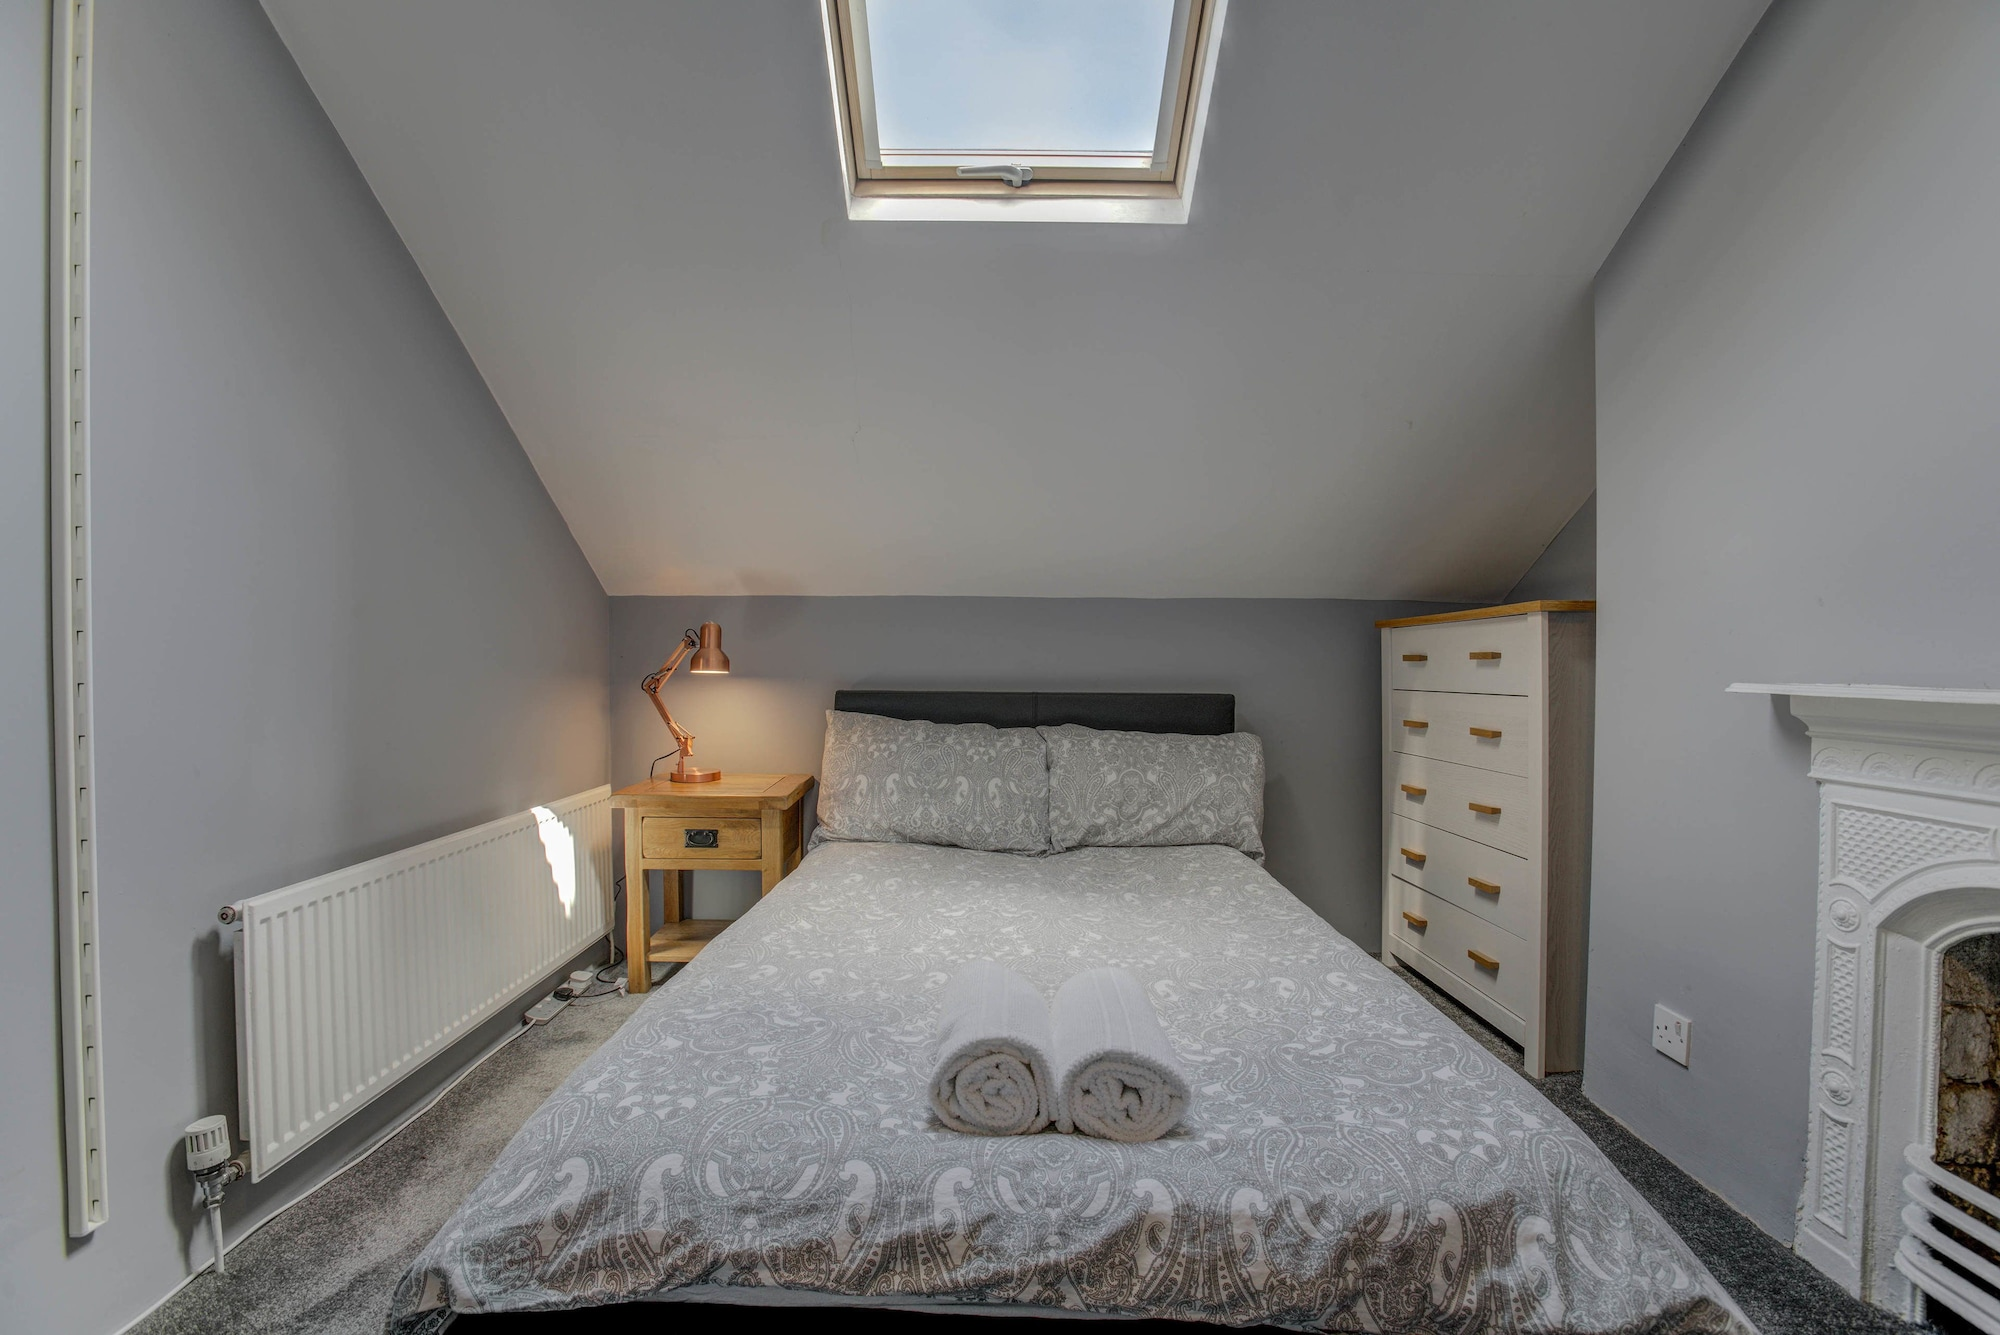 Characterful Self-Catering Townhouse (Levenshulme), Stockport